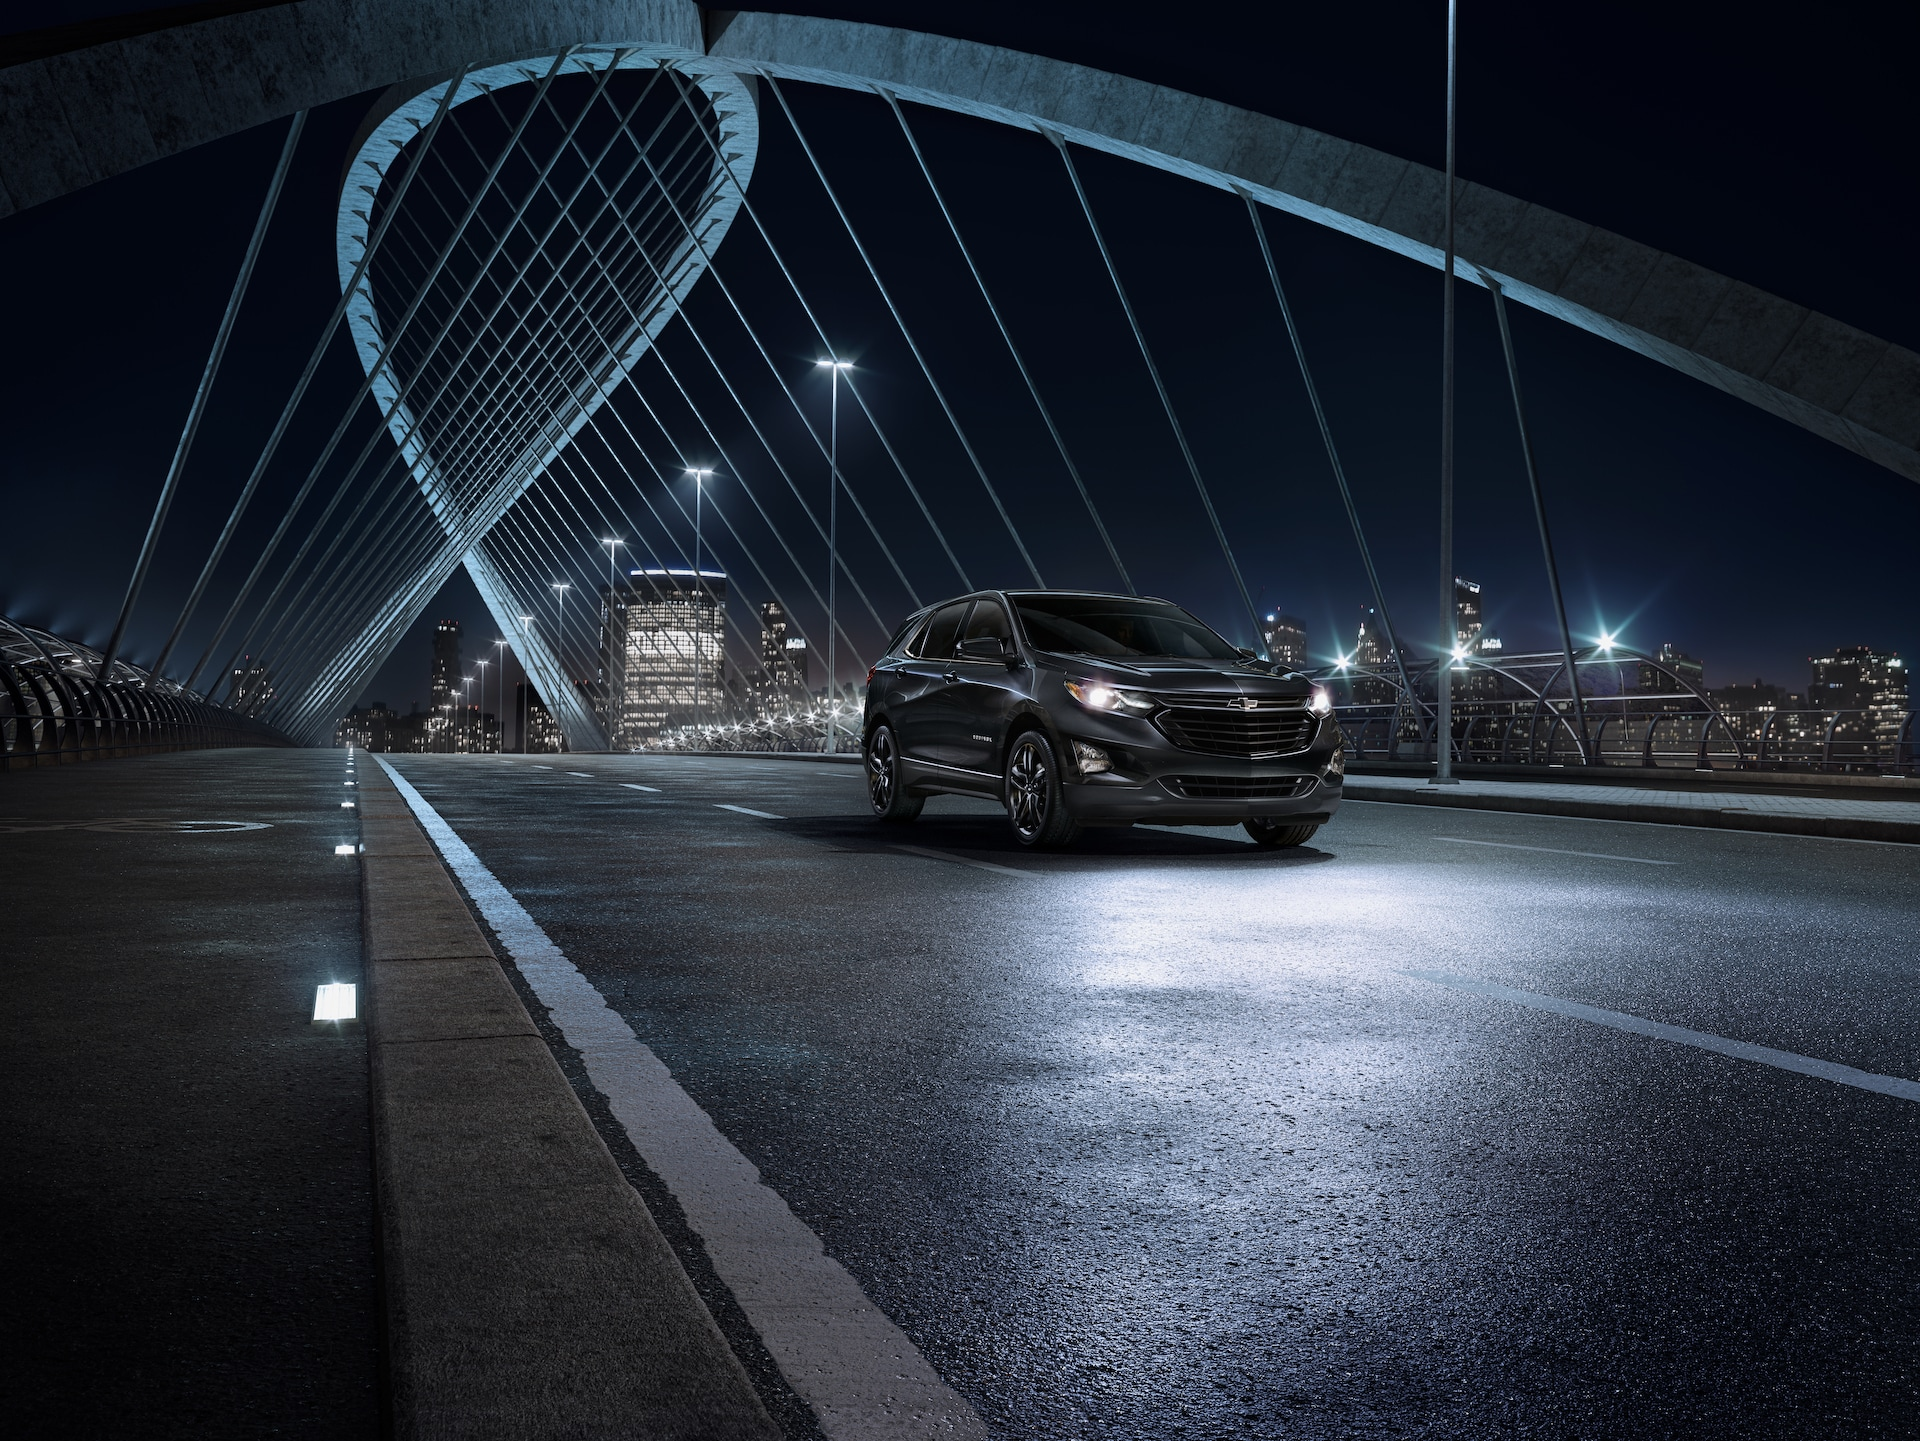 Chevrolet of New Bern is a Car Dealership in New Bern near Bogue NC | 2020 Chevrolet Equinox on bridge at night